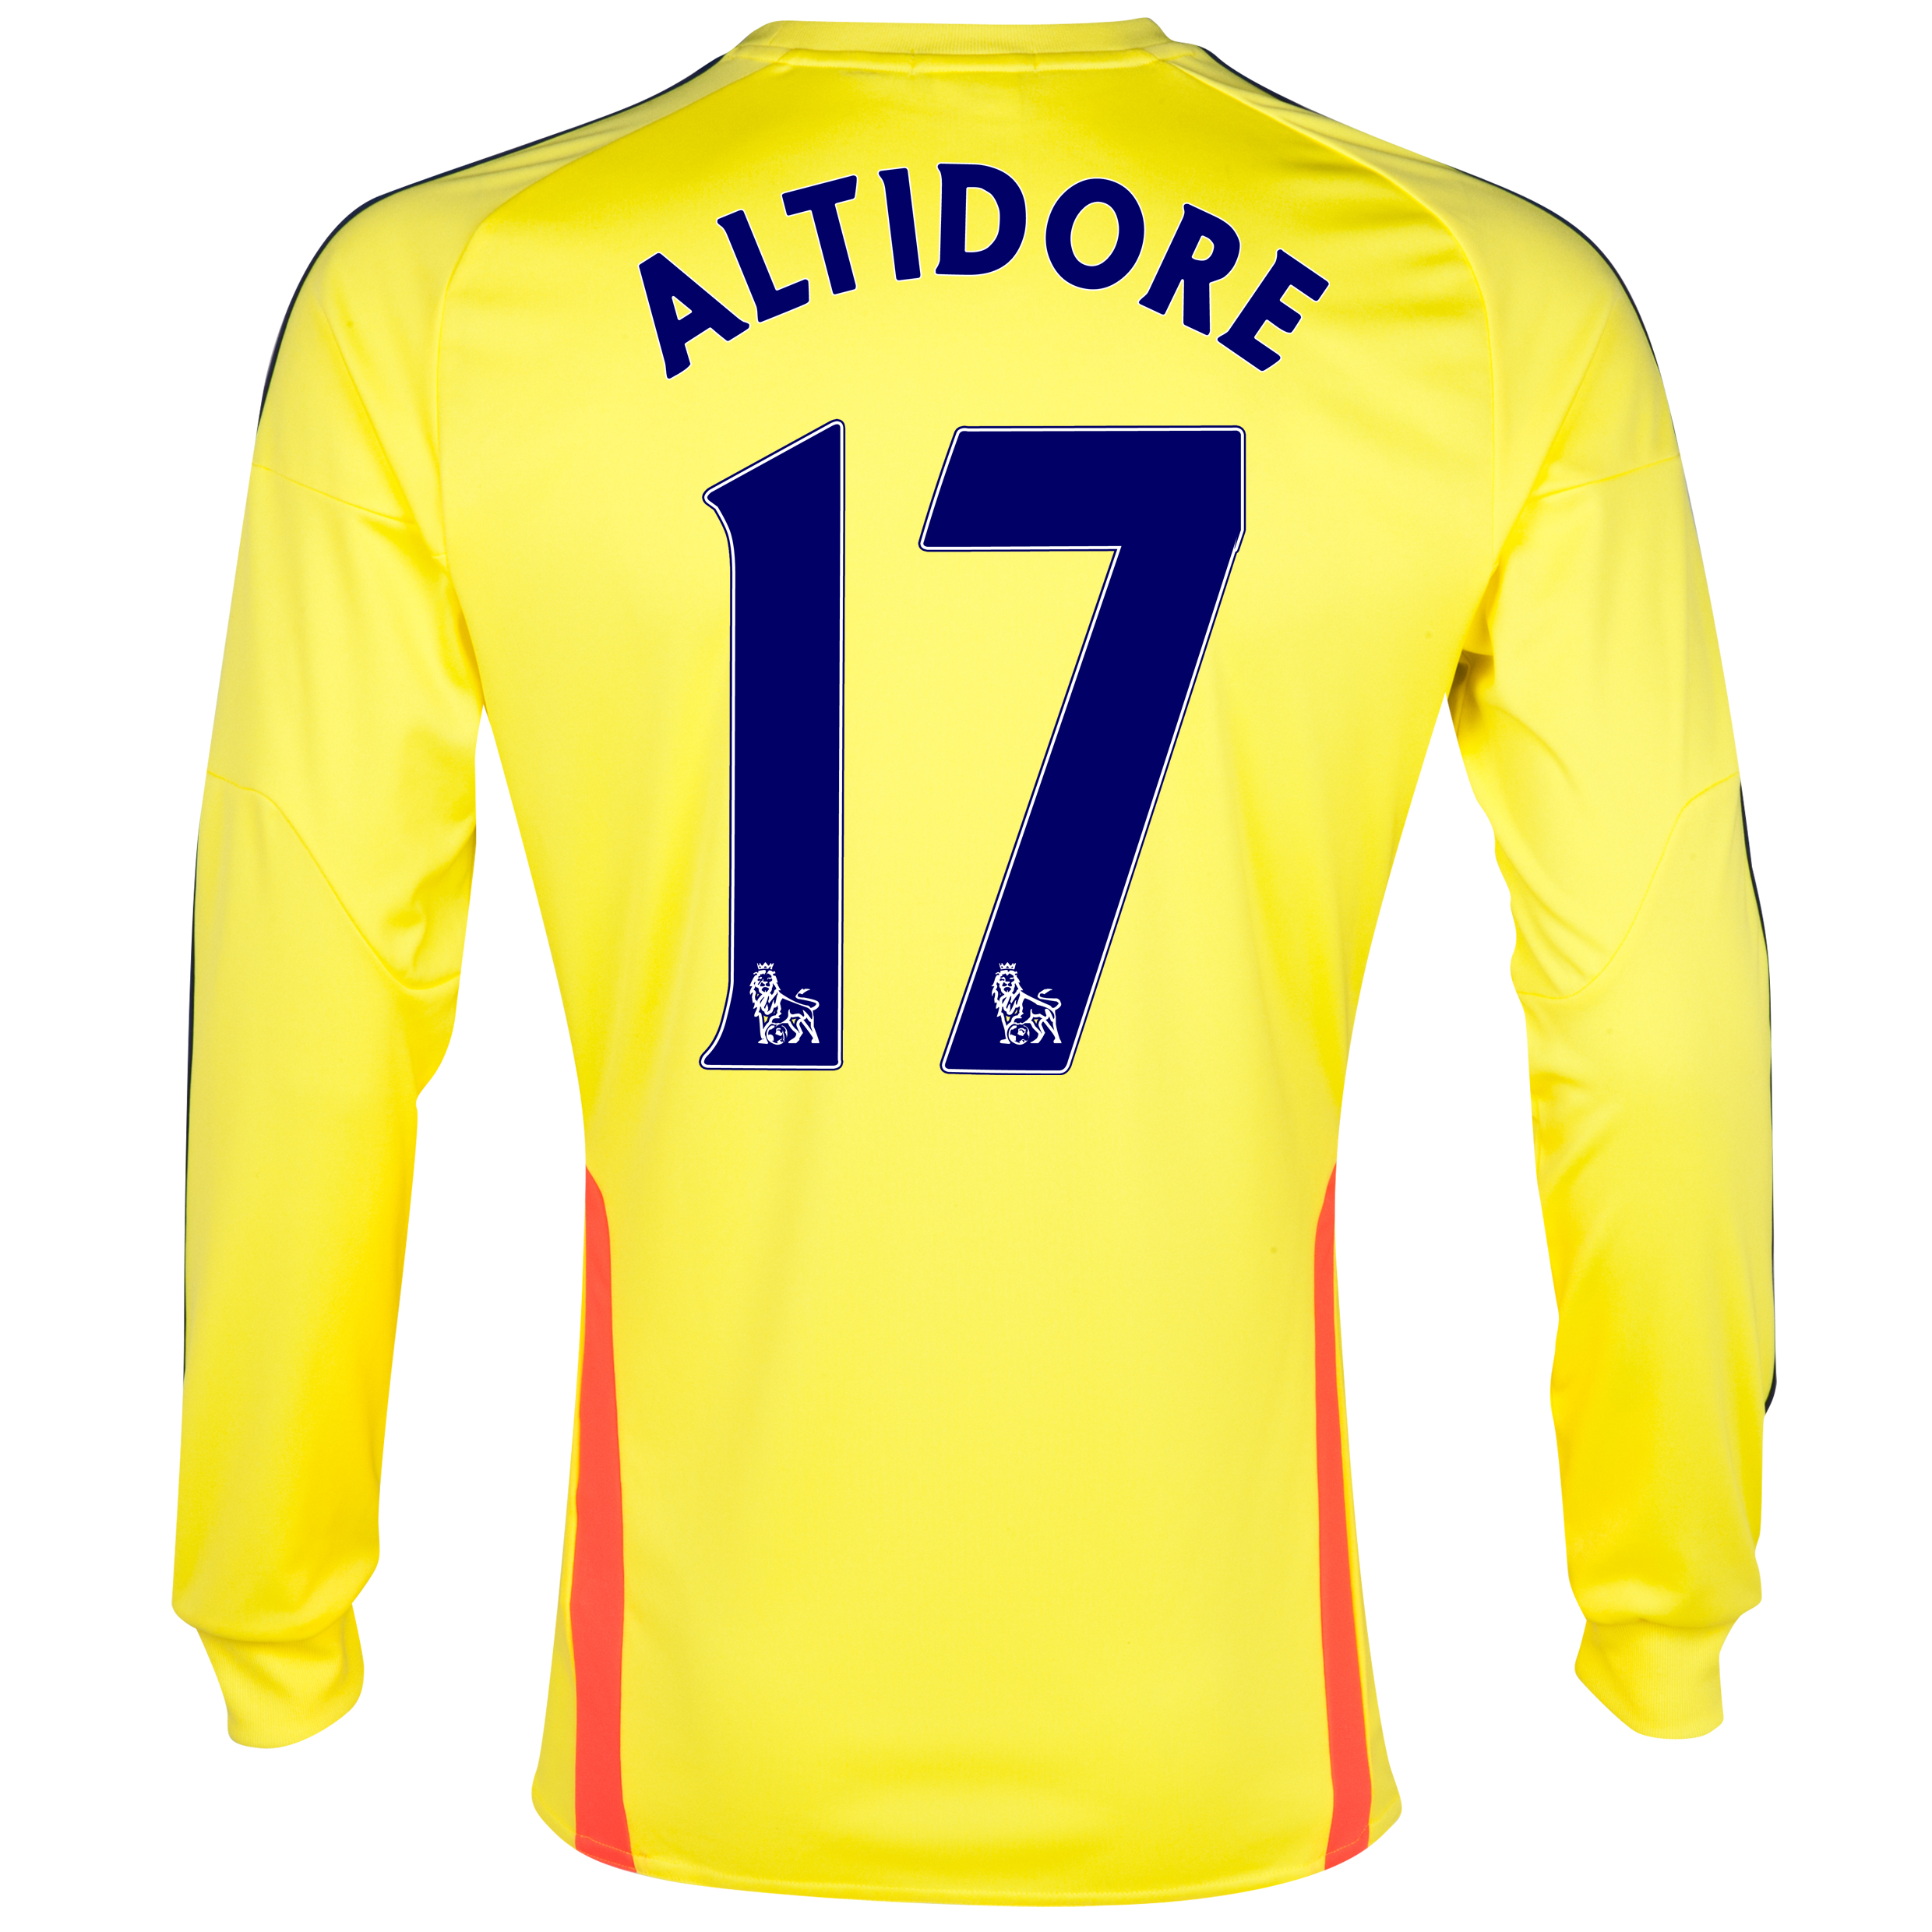 Sunderland Away Shirt 2013/14 - Long Sleeved with Altidore 17 printing